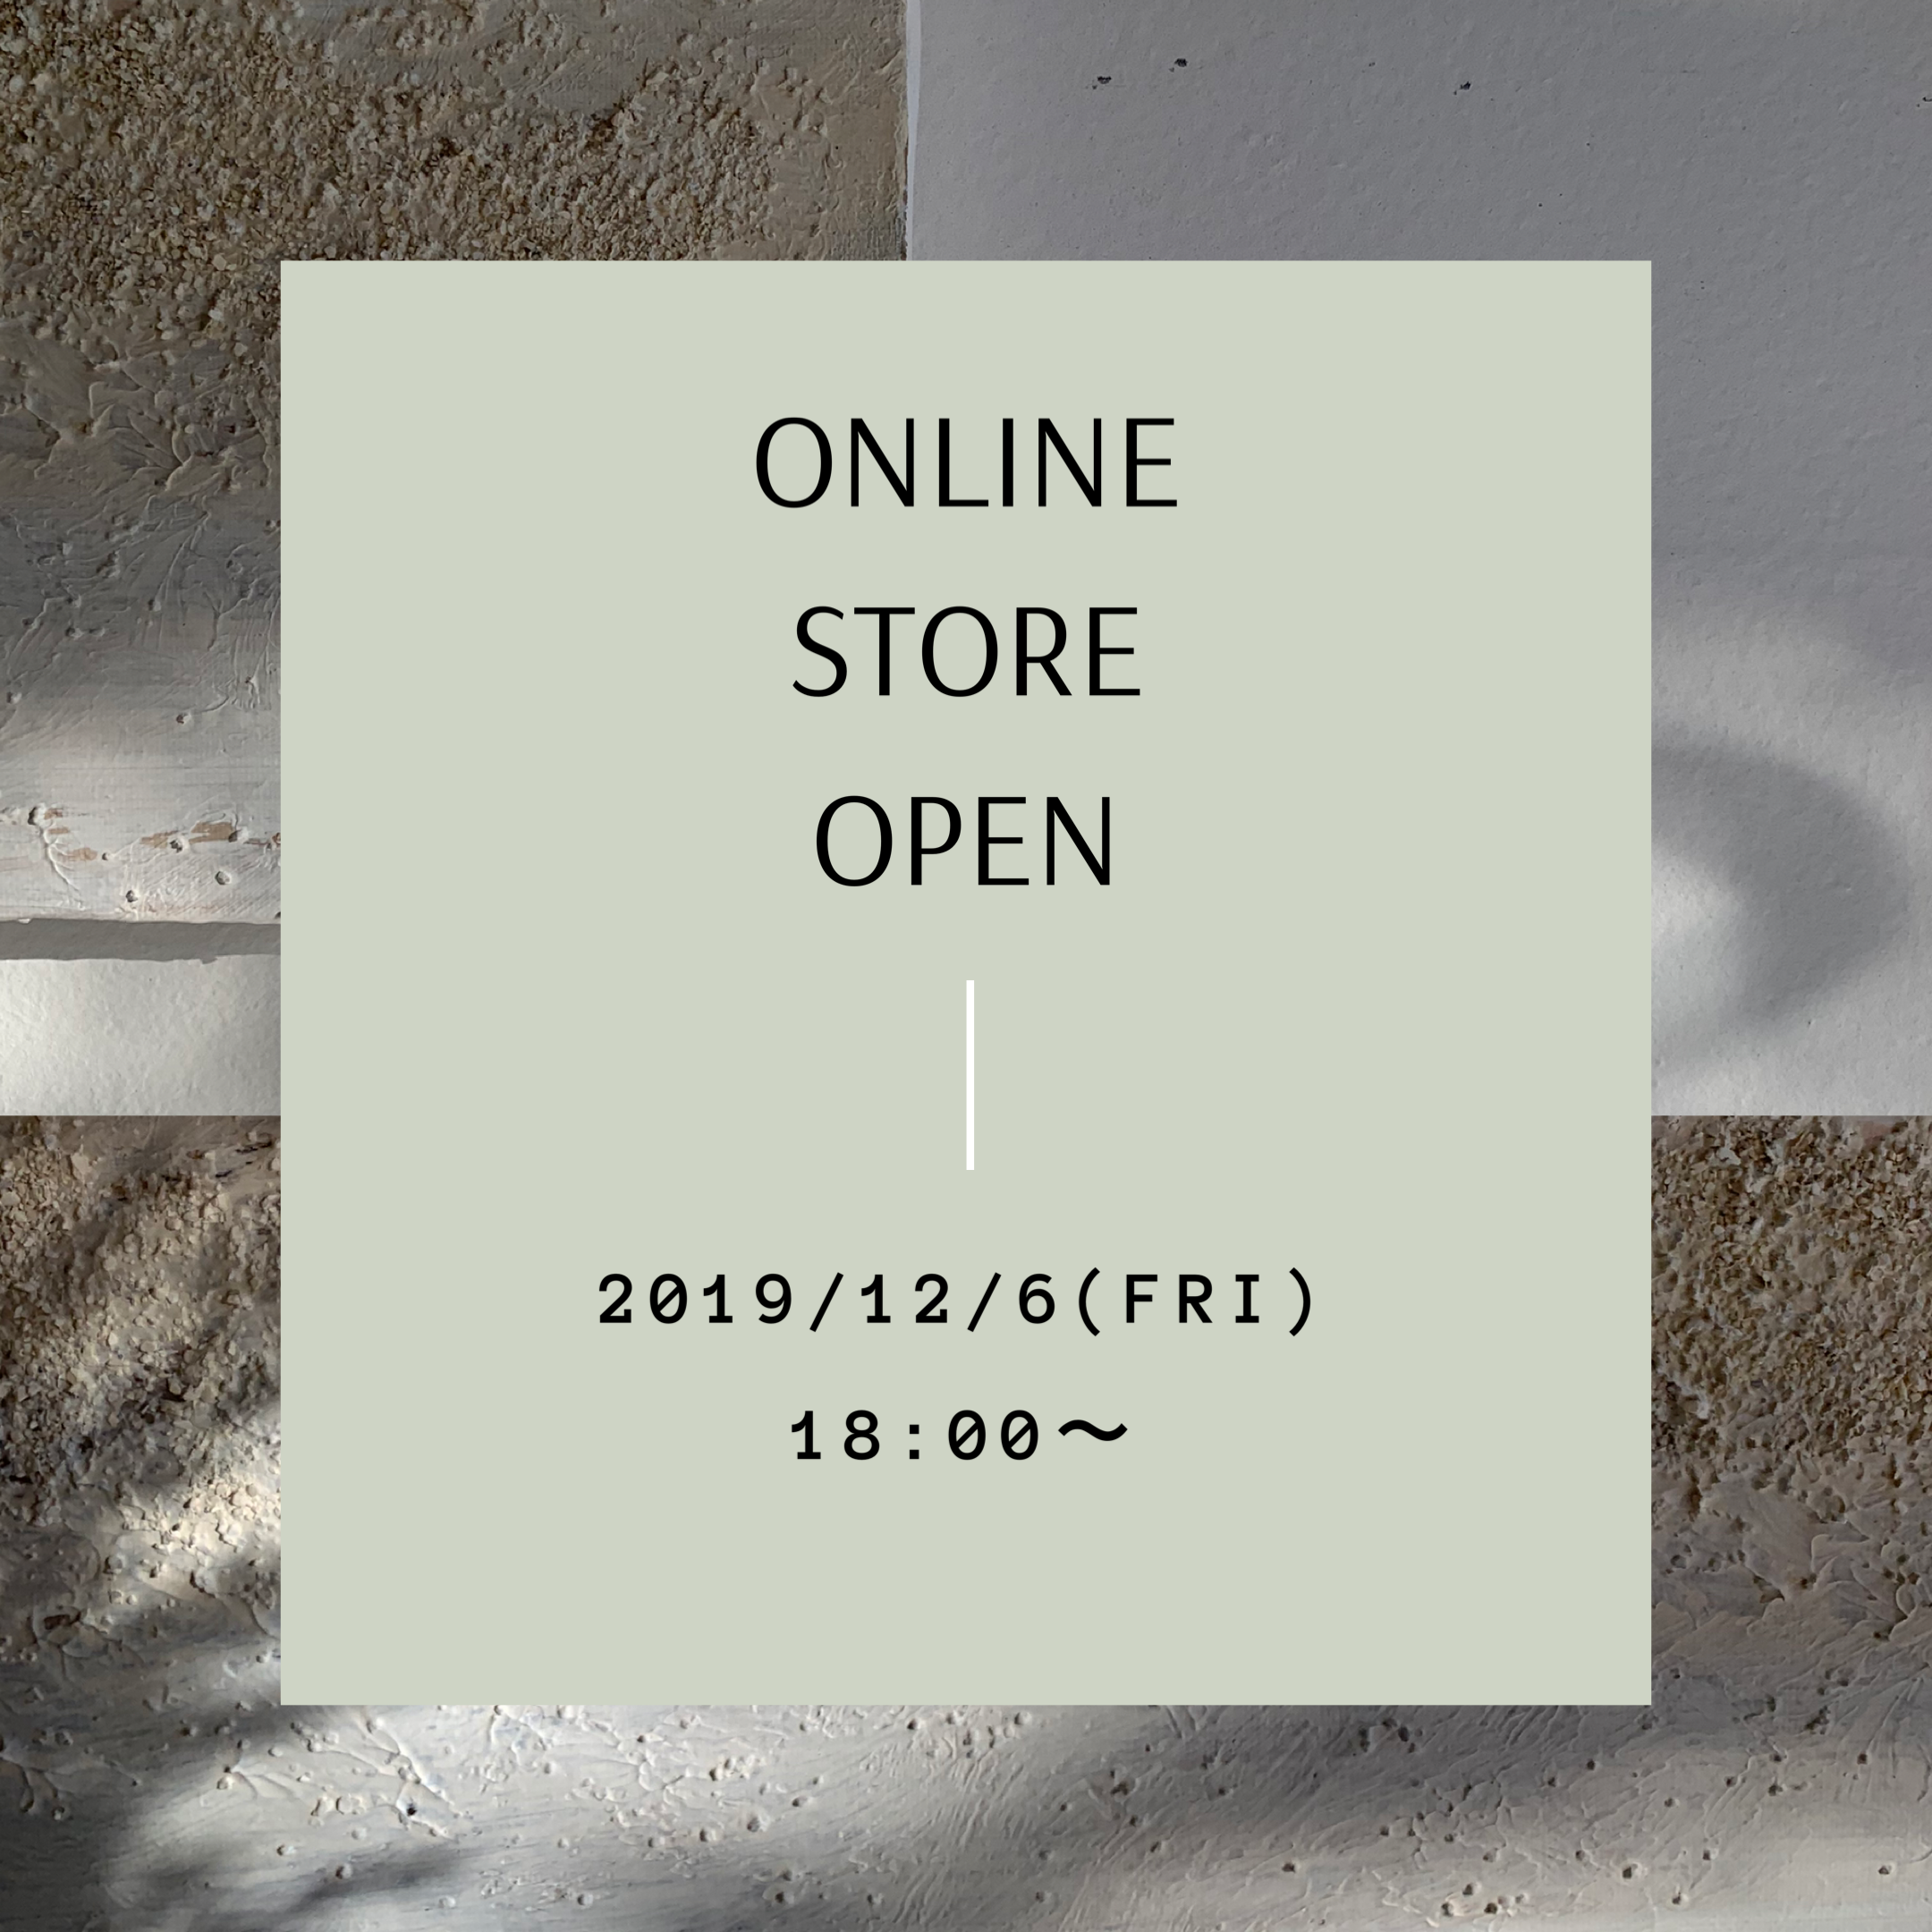 STORE OPEN のご案内